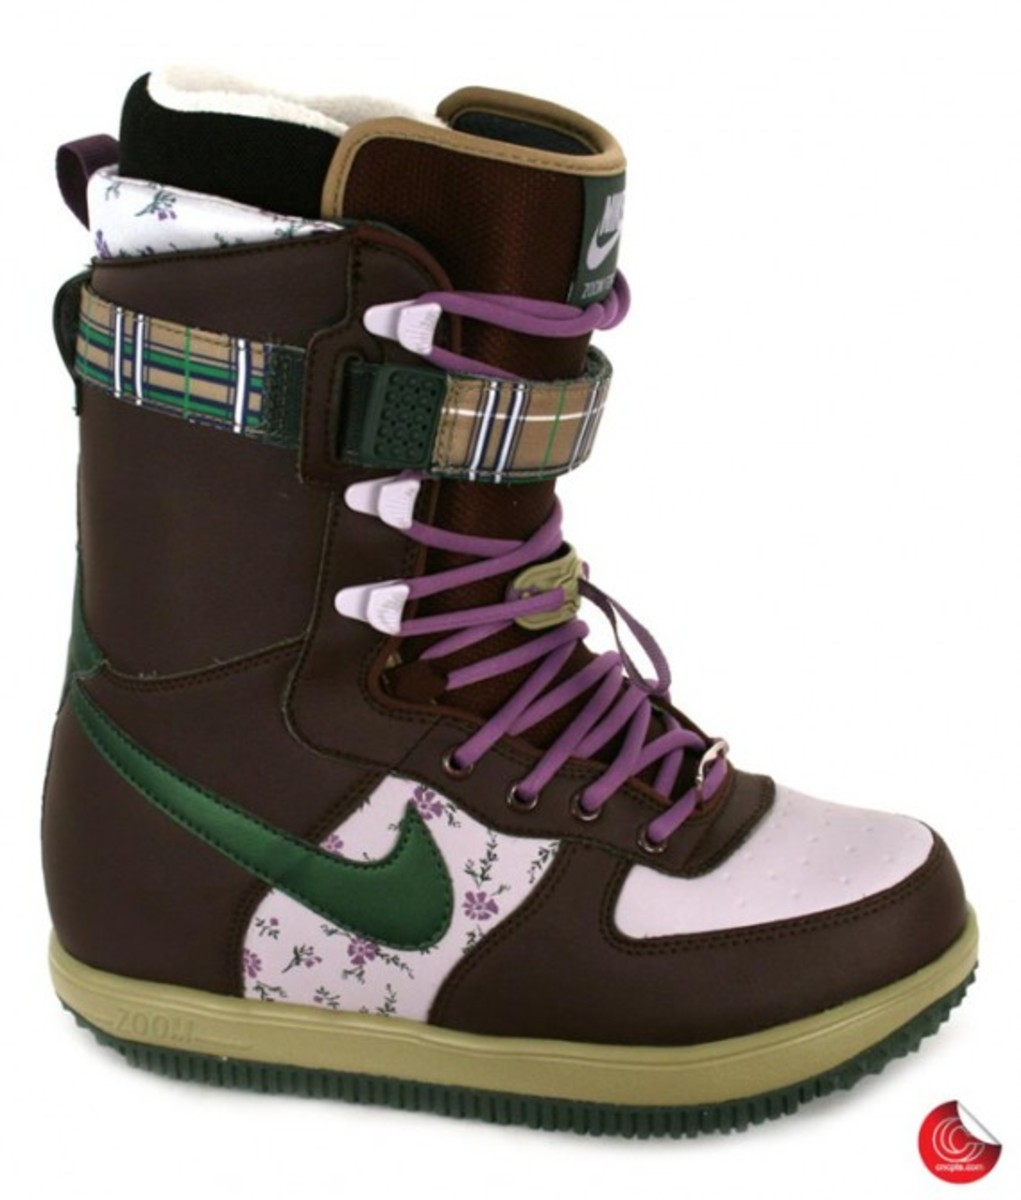 nike_snowboarding_boots_4